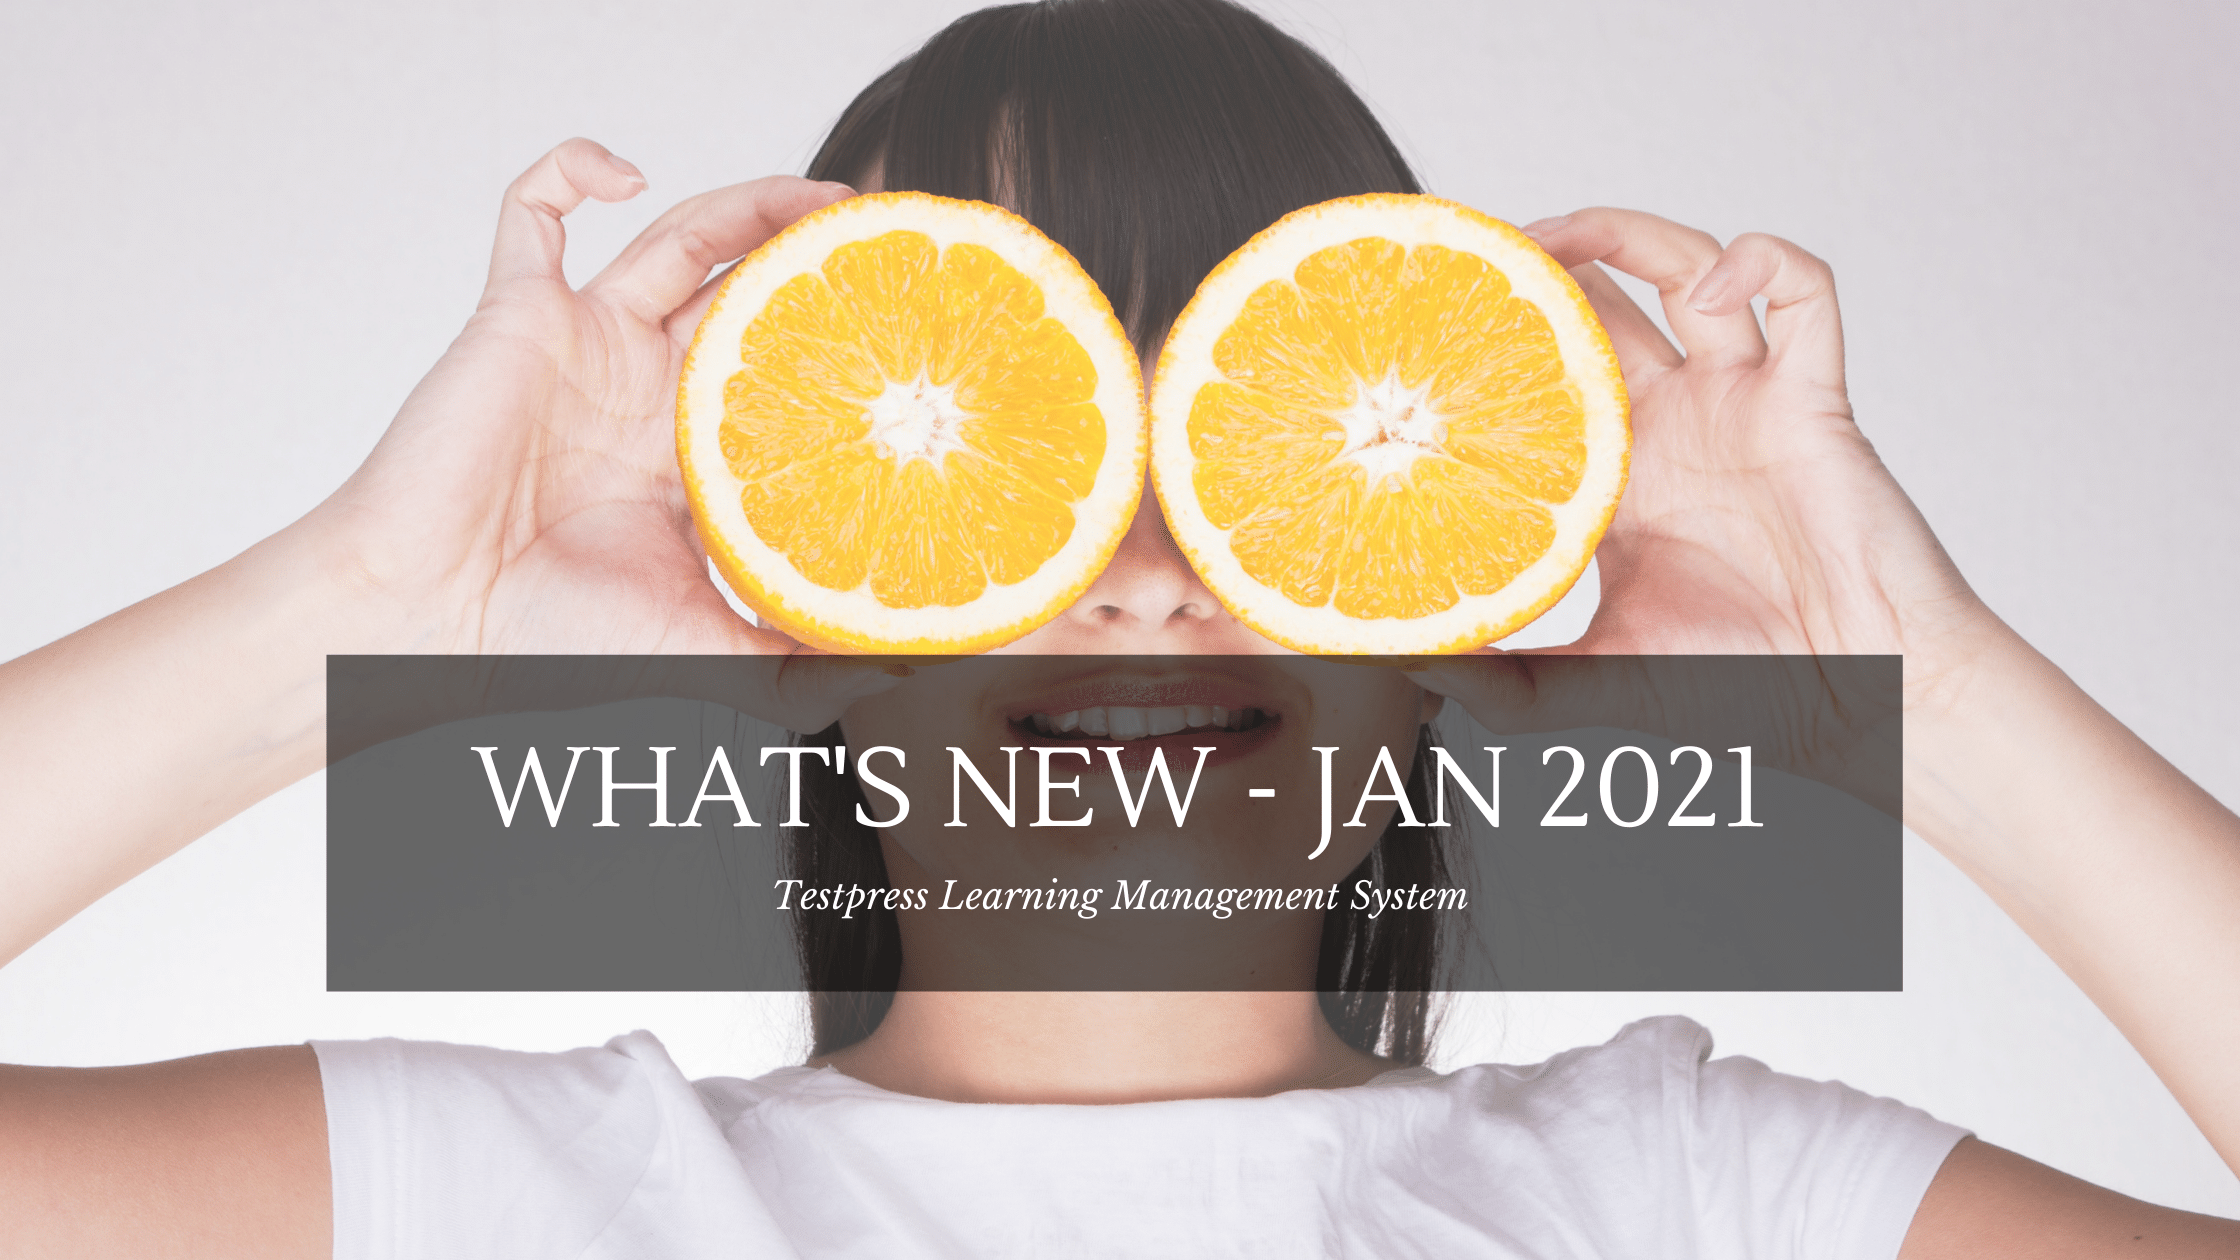 What's new in Testpress Learning Management System - Jan 2021